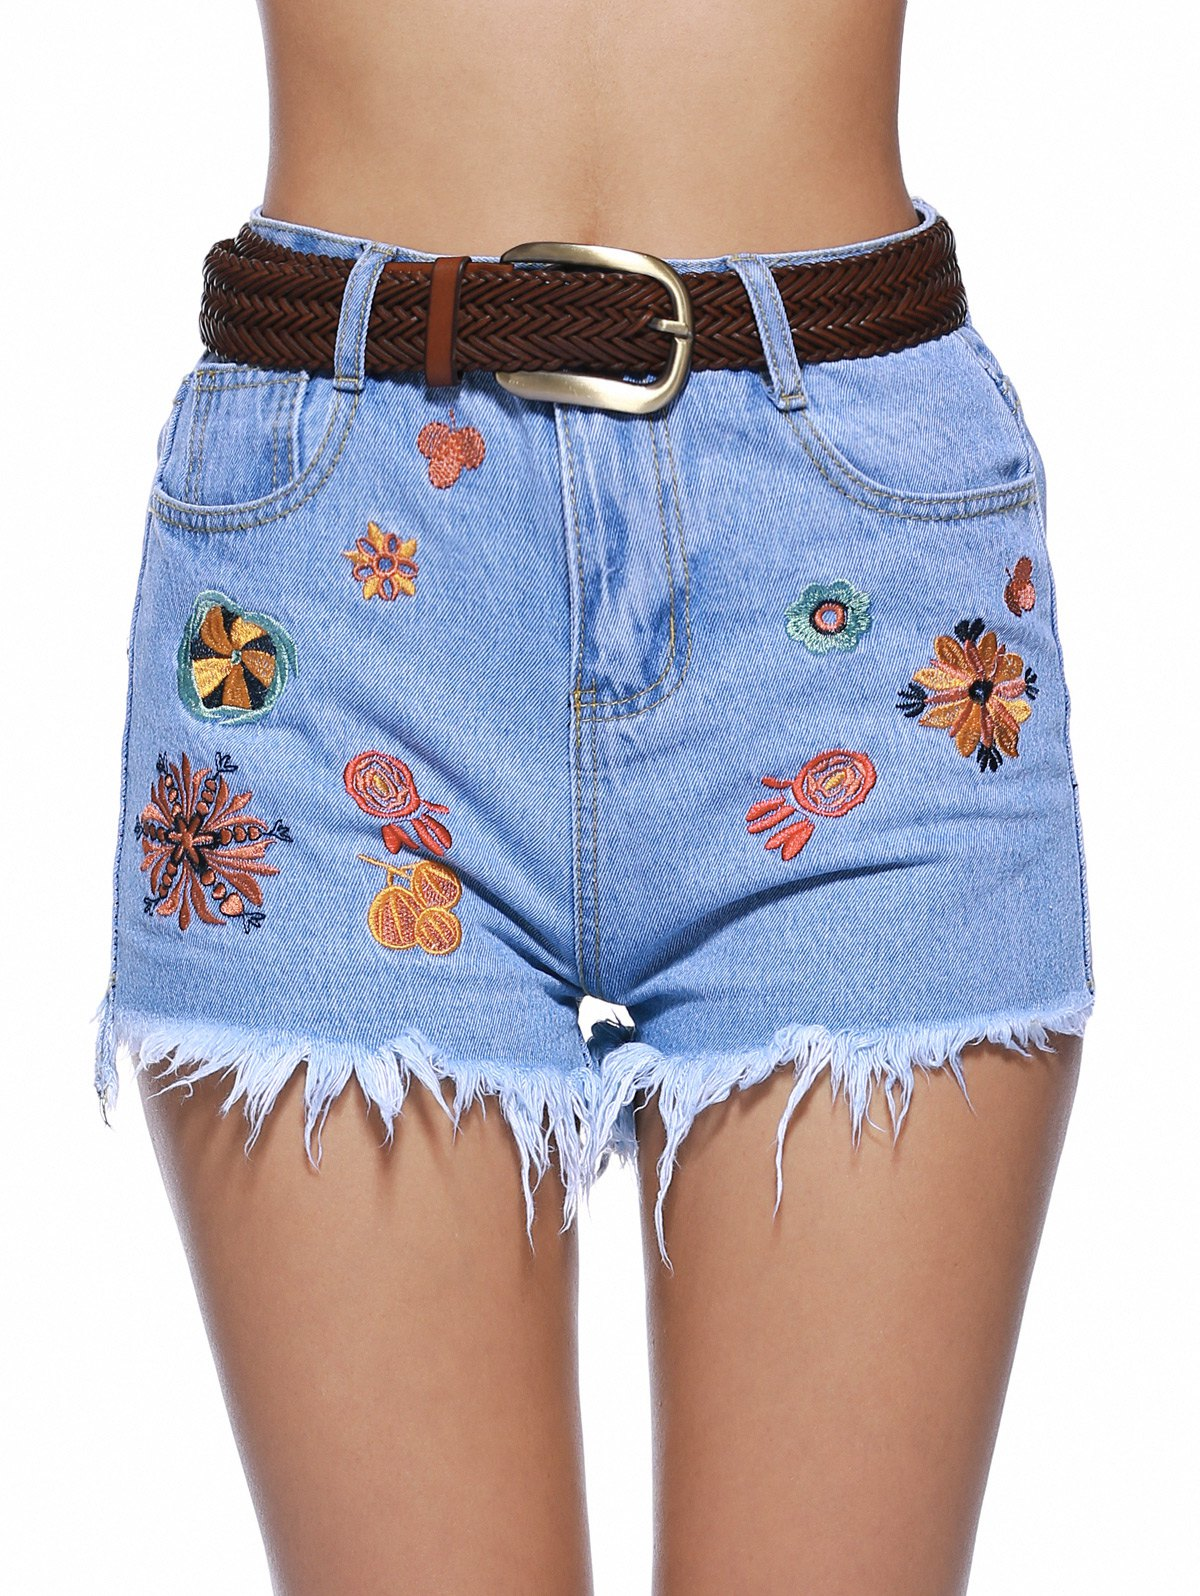 Stylish Embroidery Raw Hem Denim Shorts For Women - DENIM BLUE M